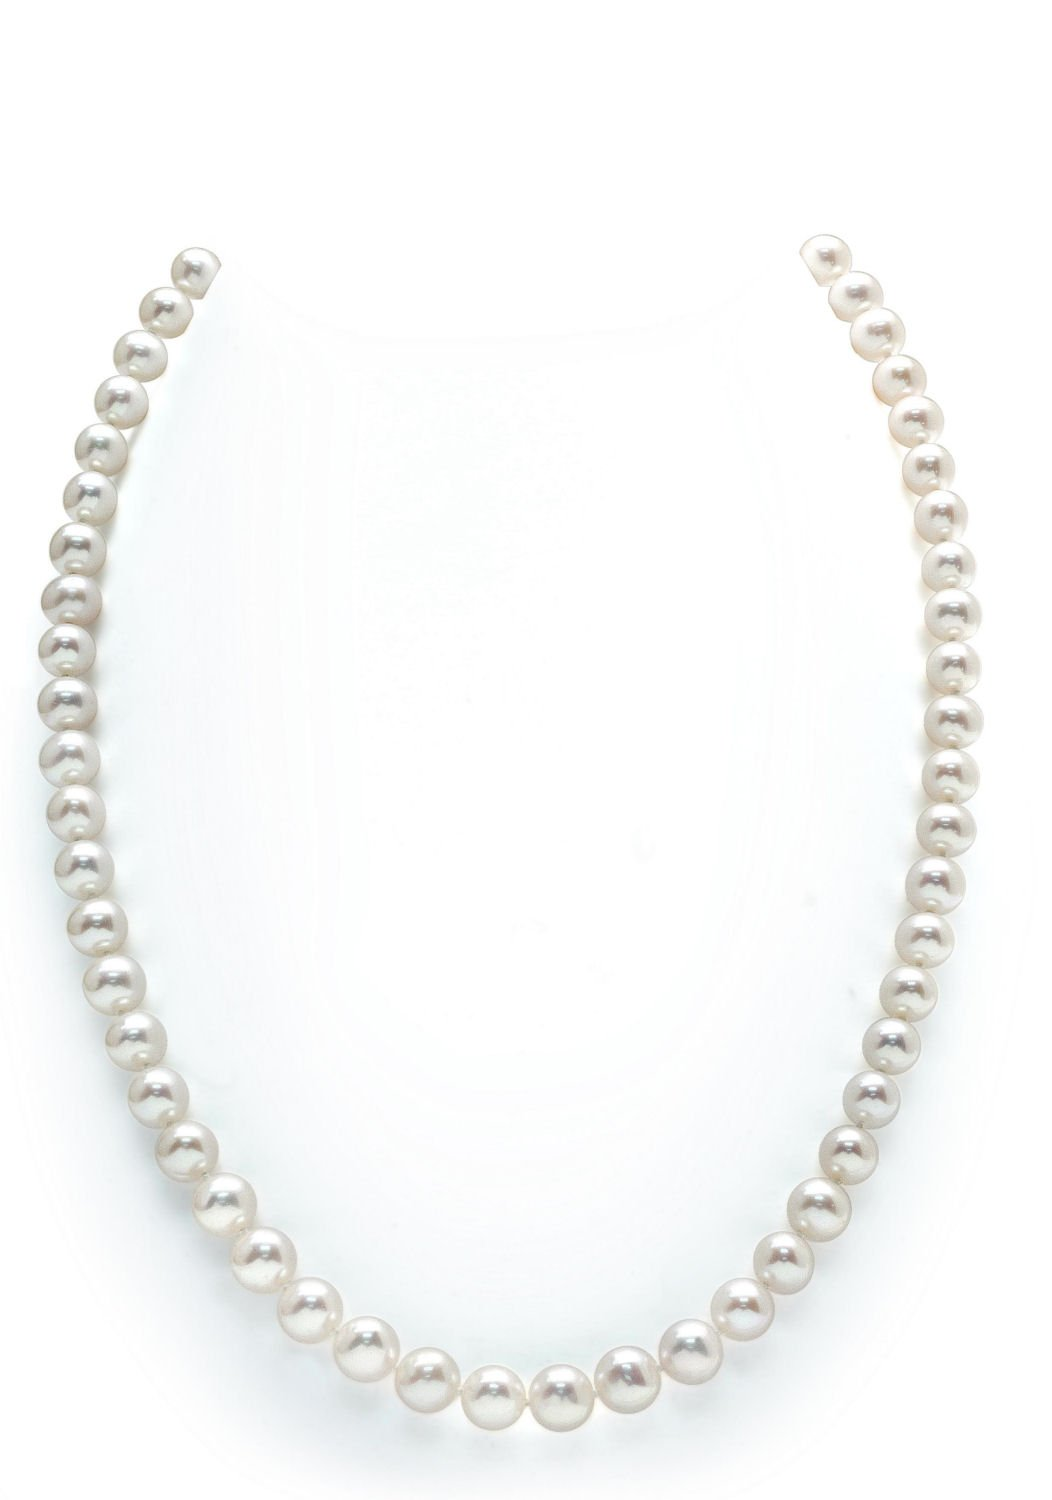 14K Gold 7.0-7.5mm White Freshwater Cultured Pearl Necklace, 18'' Princess Length